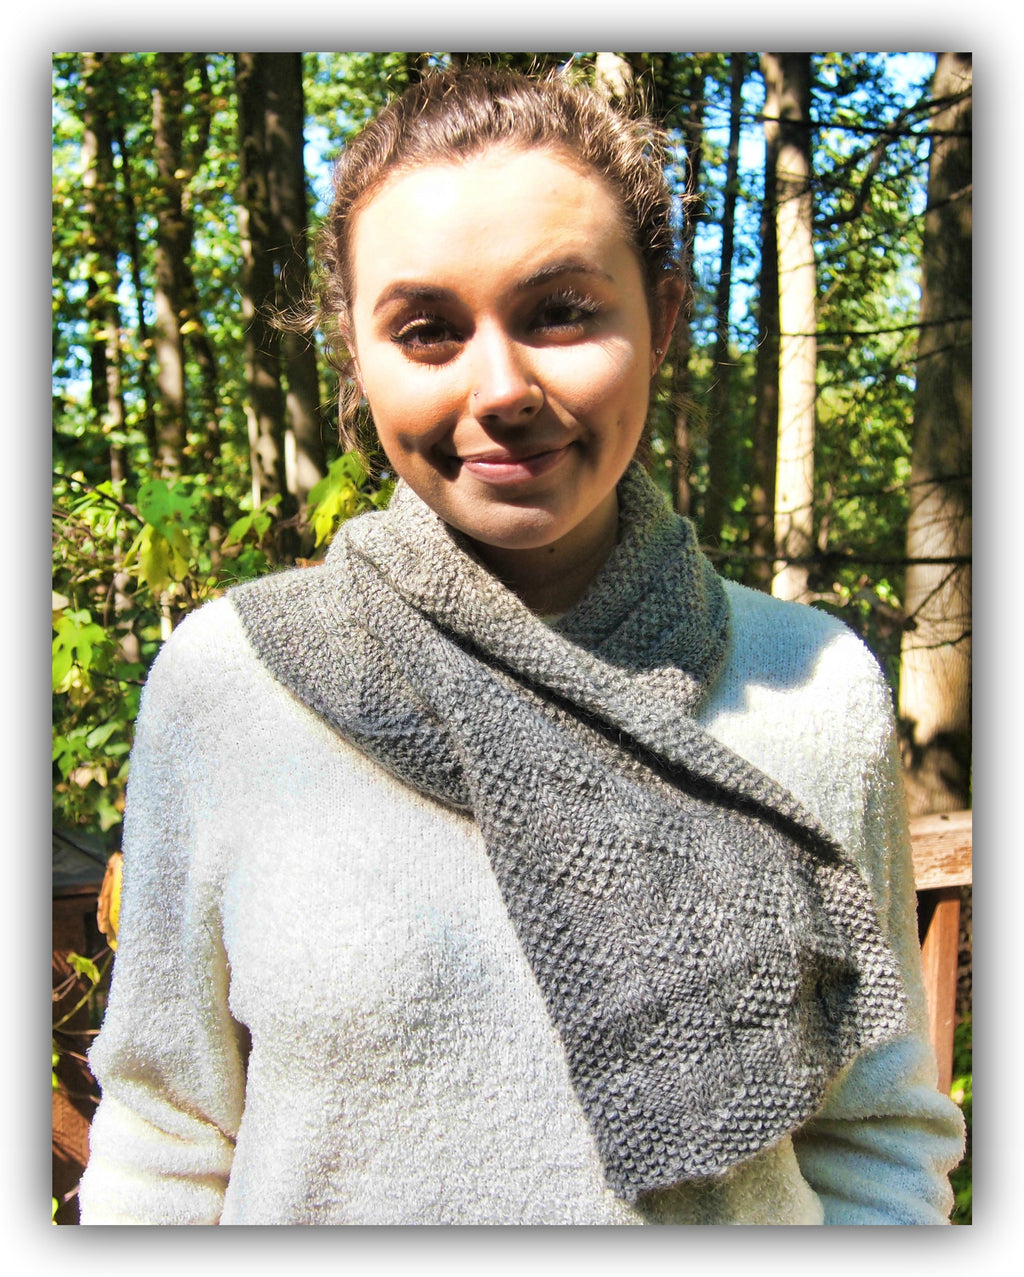 Borrowed Scarf - Designed by Jan Bellhorn